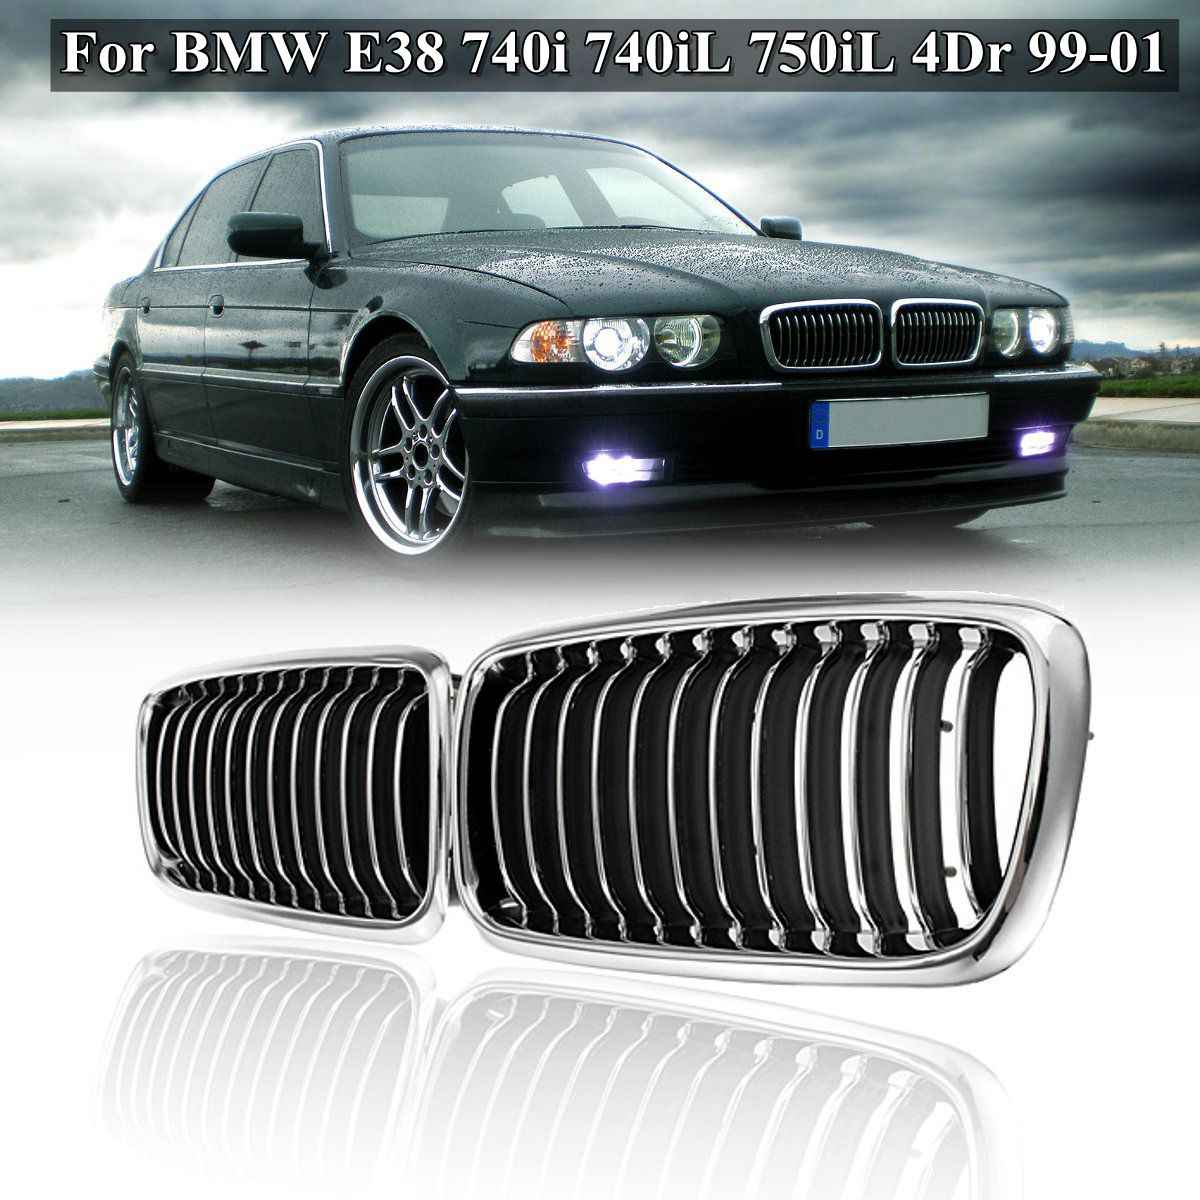 small resolution of pair matte black chrome front grill grille for bmw e38 740i 740il 750il 4dr 1999 2000